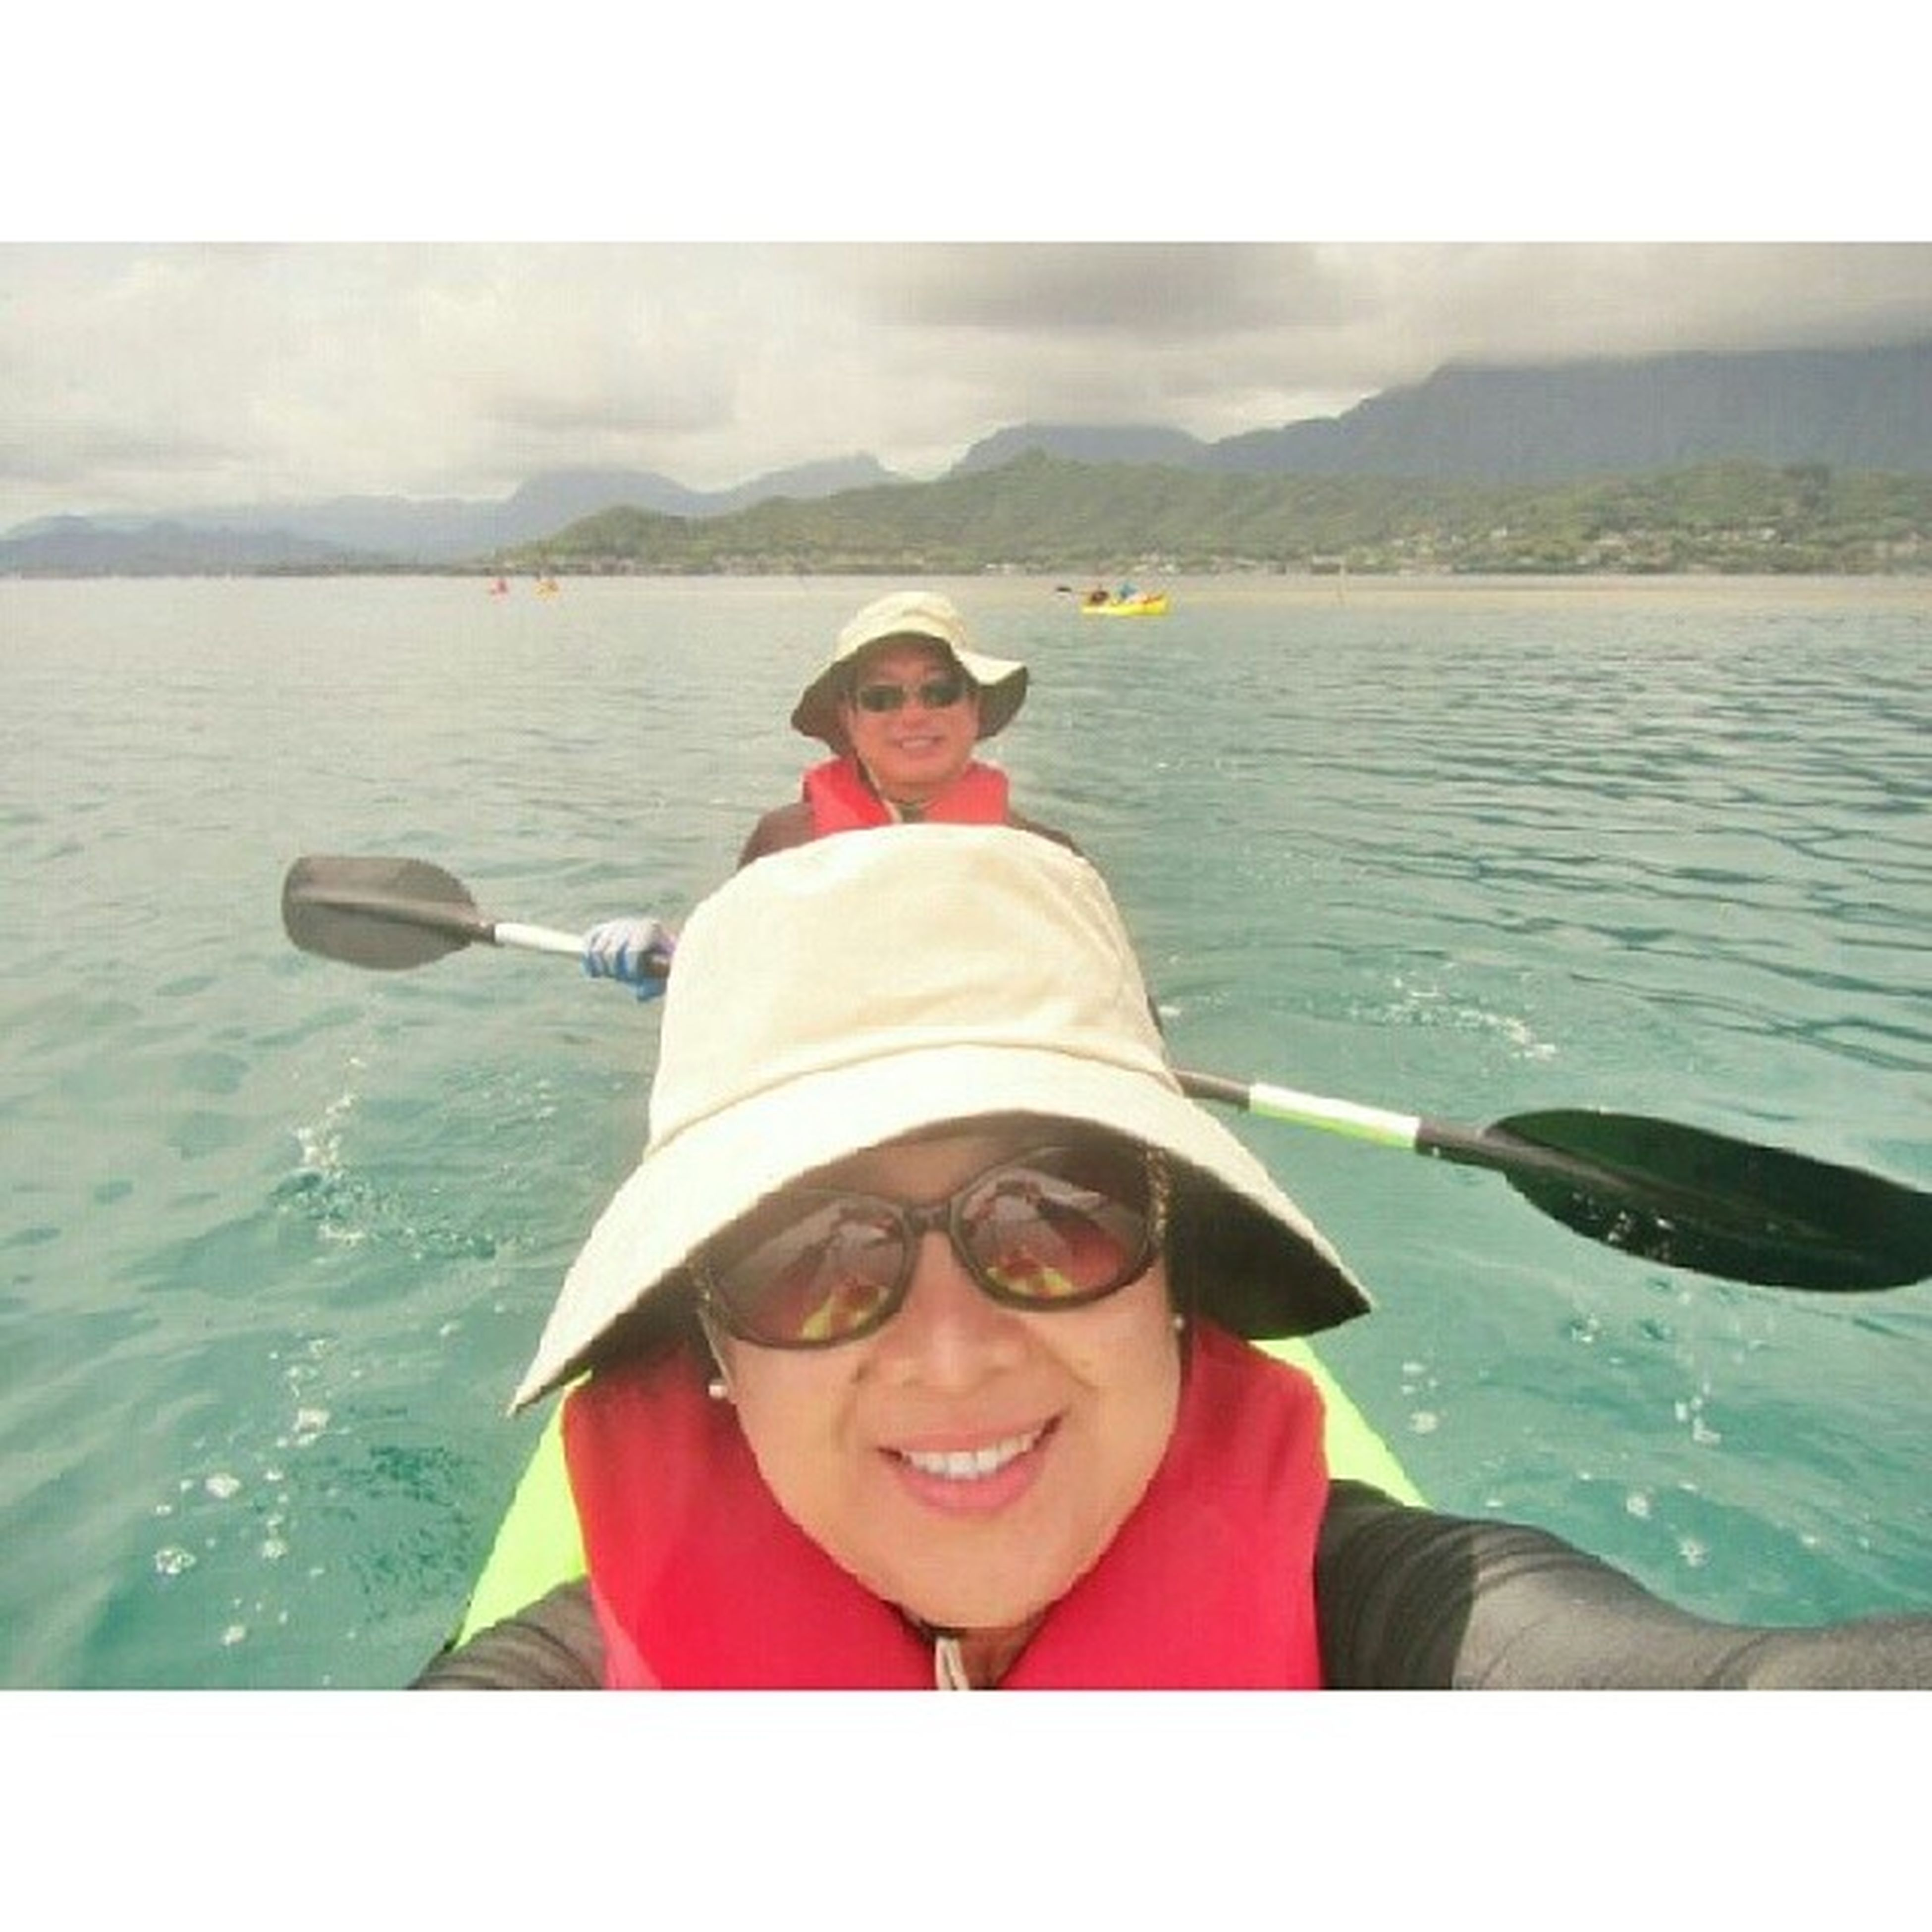 I'm taking a Selfie while my hubby continues to paddle and moving us forward. Tandemkayak Wateradventures Paddling kayakingtrip kayakingadventures hawaiilife lovingwhatido livingthegoodlife luckywelivehawaii lovelivelife